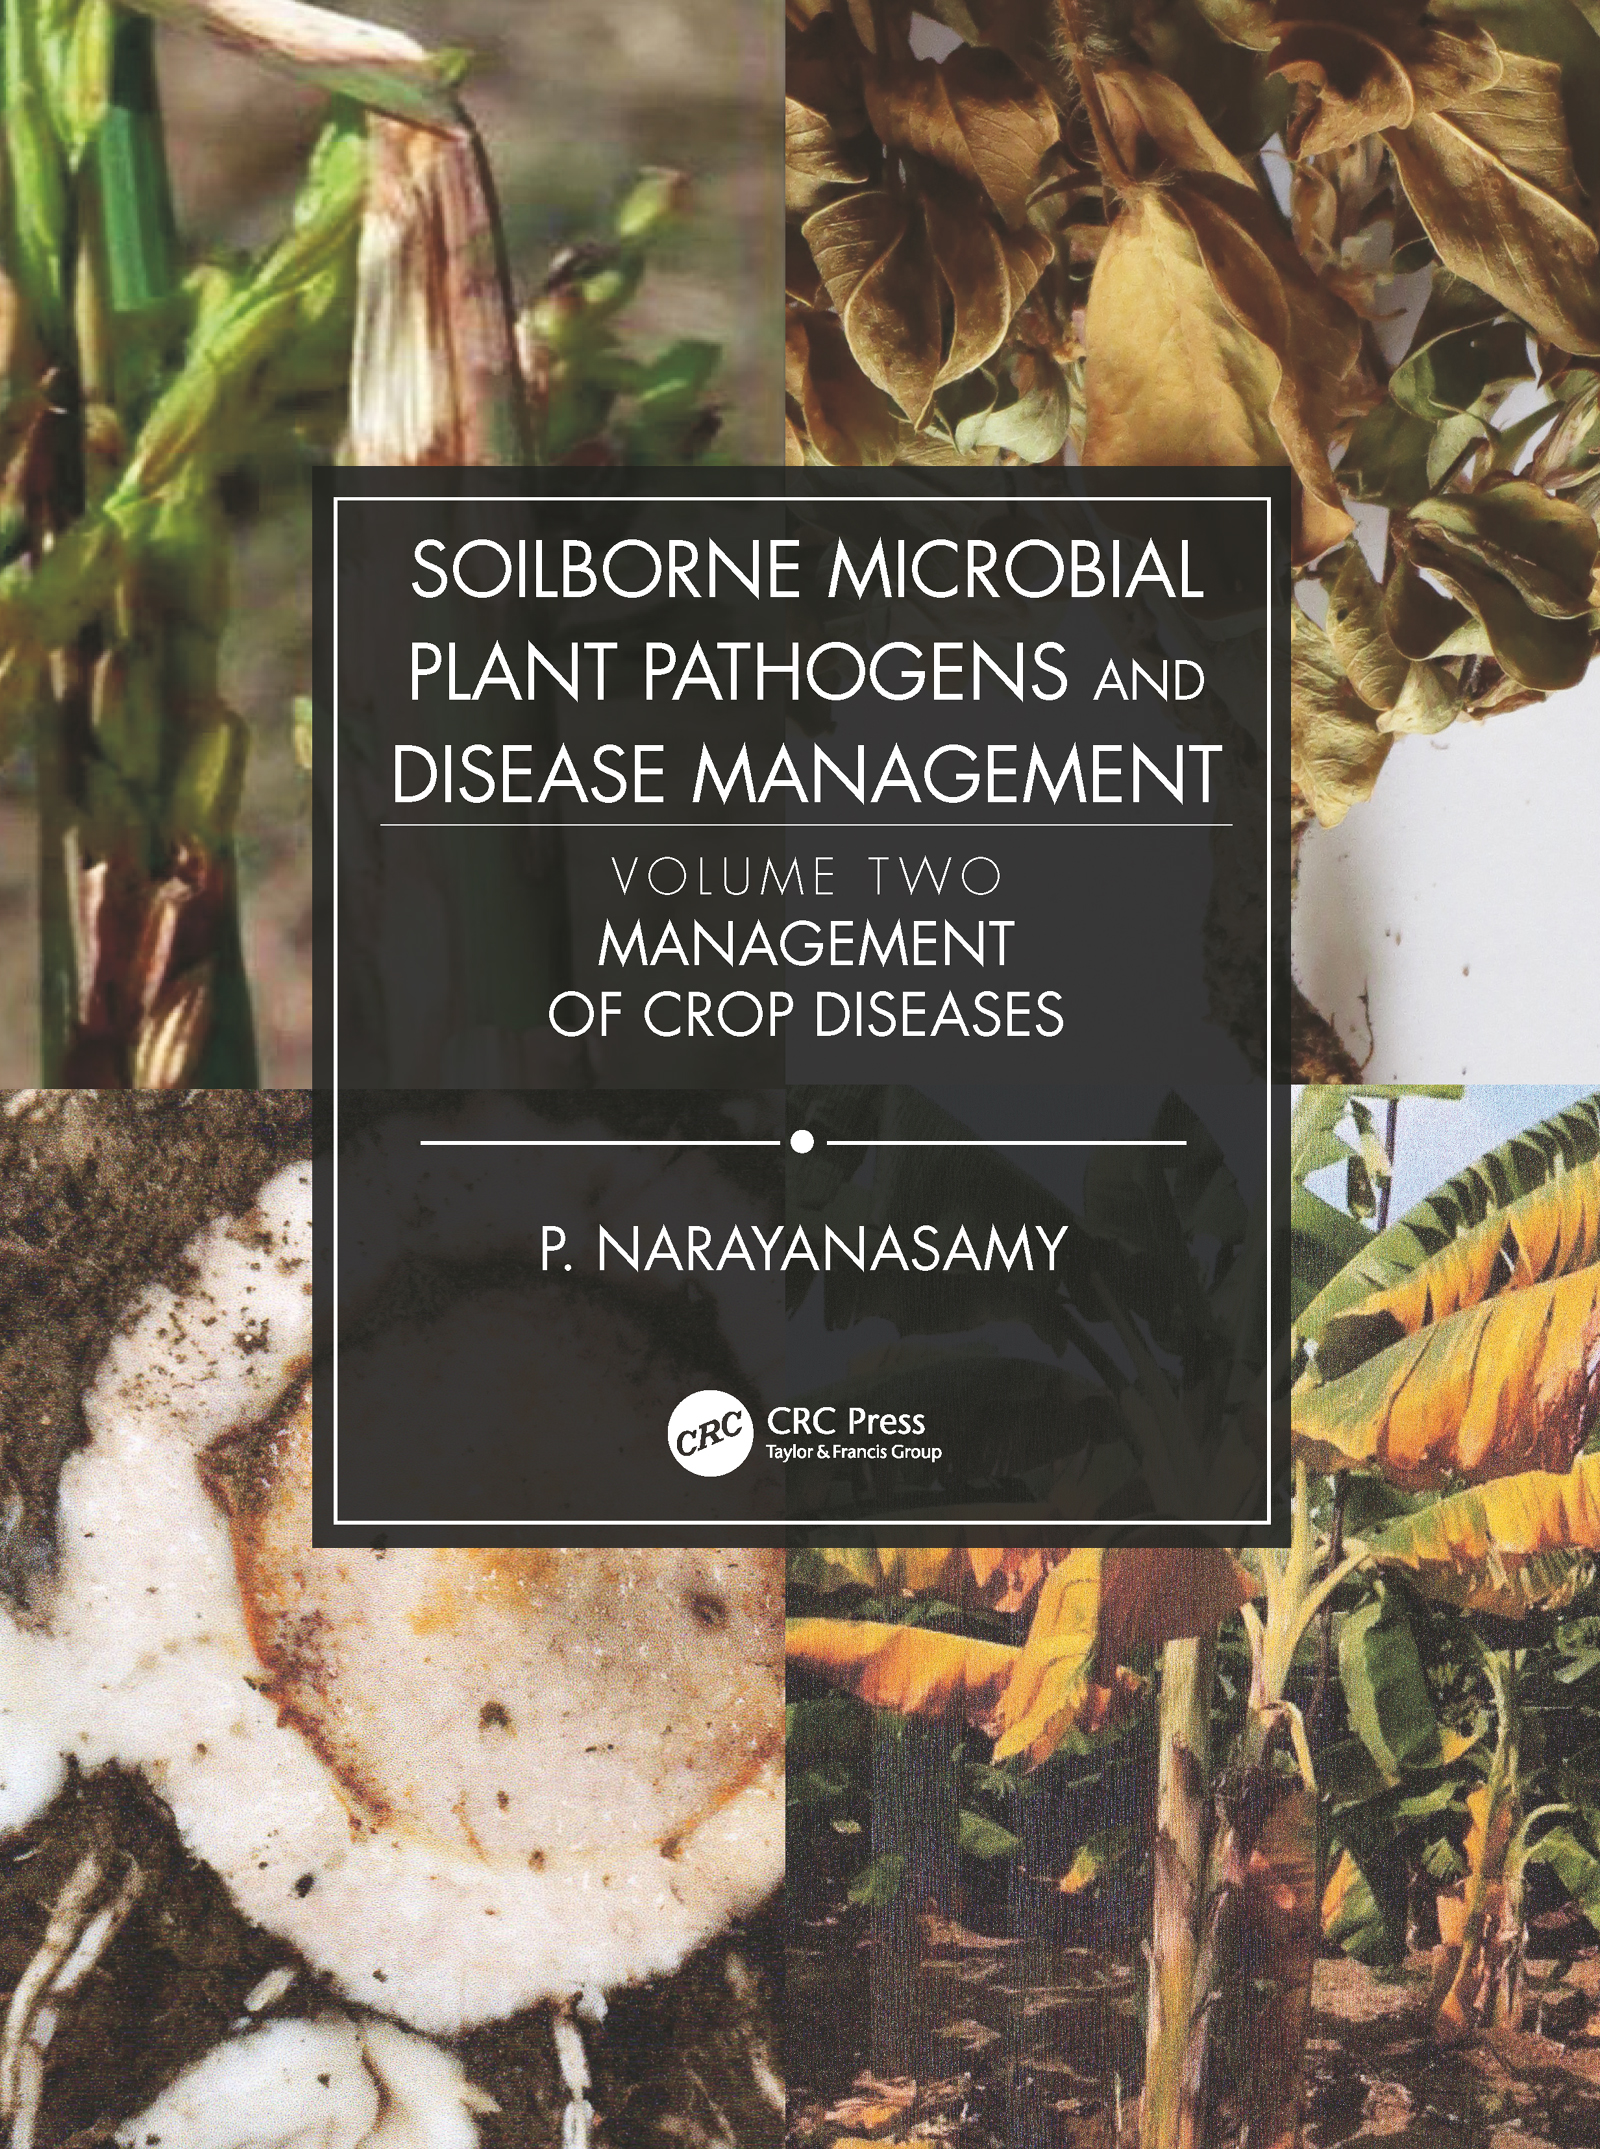 Soilborne Microbial Plant Pathogens and Disease Management, Volume Two